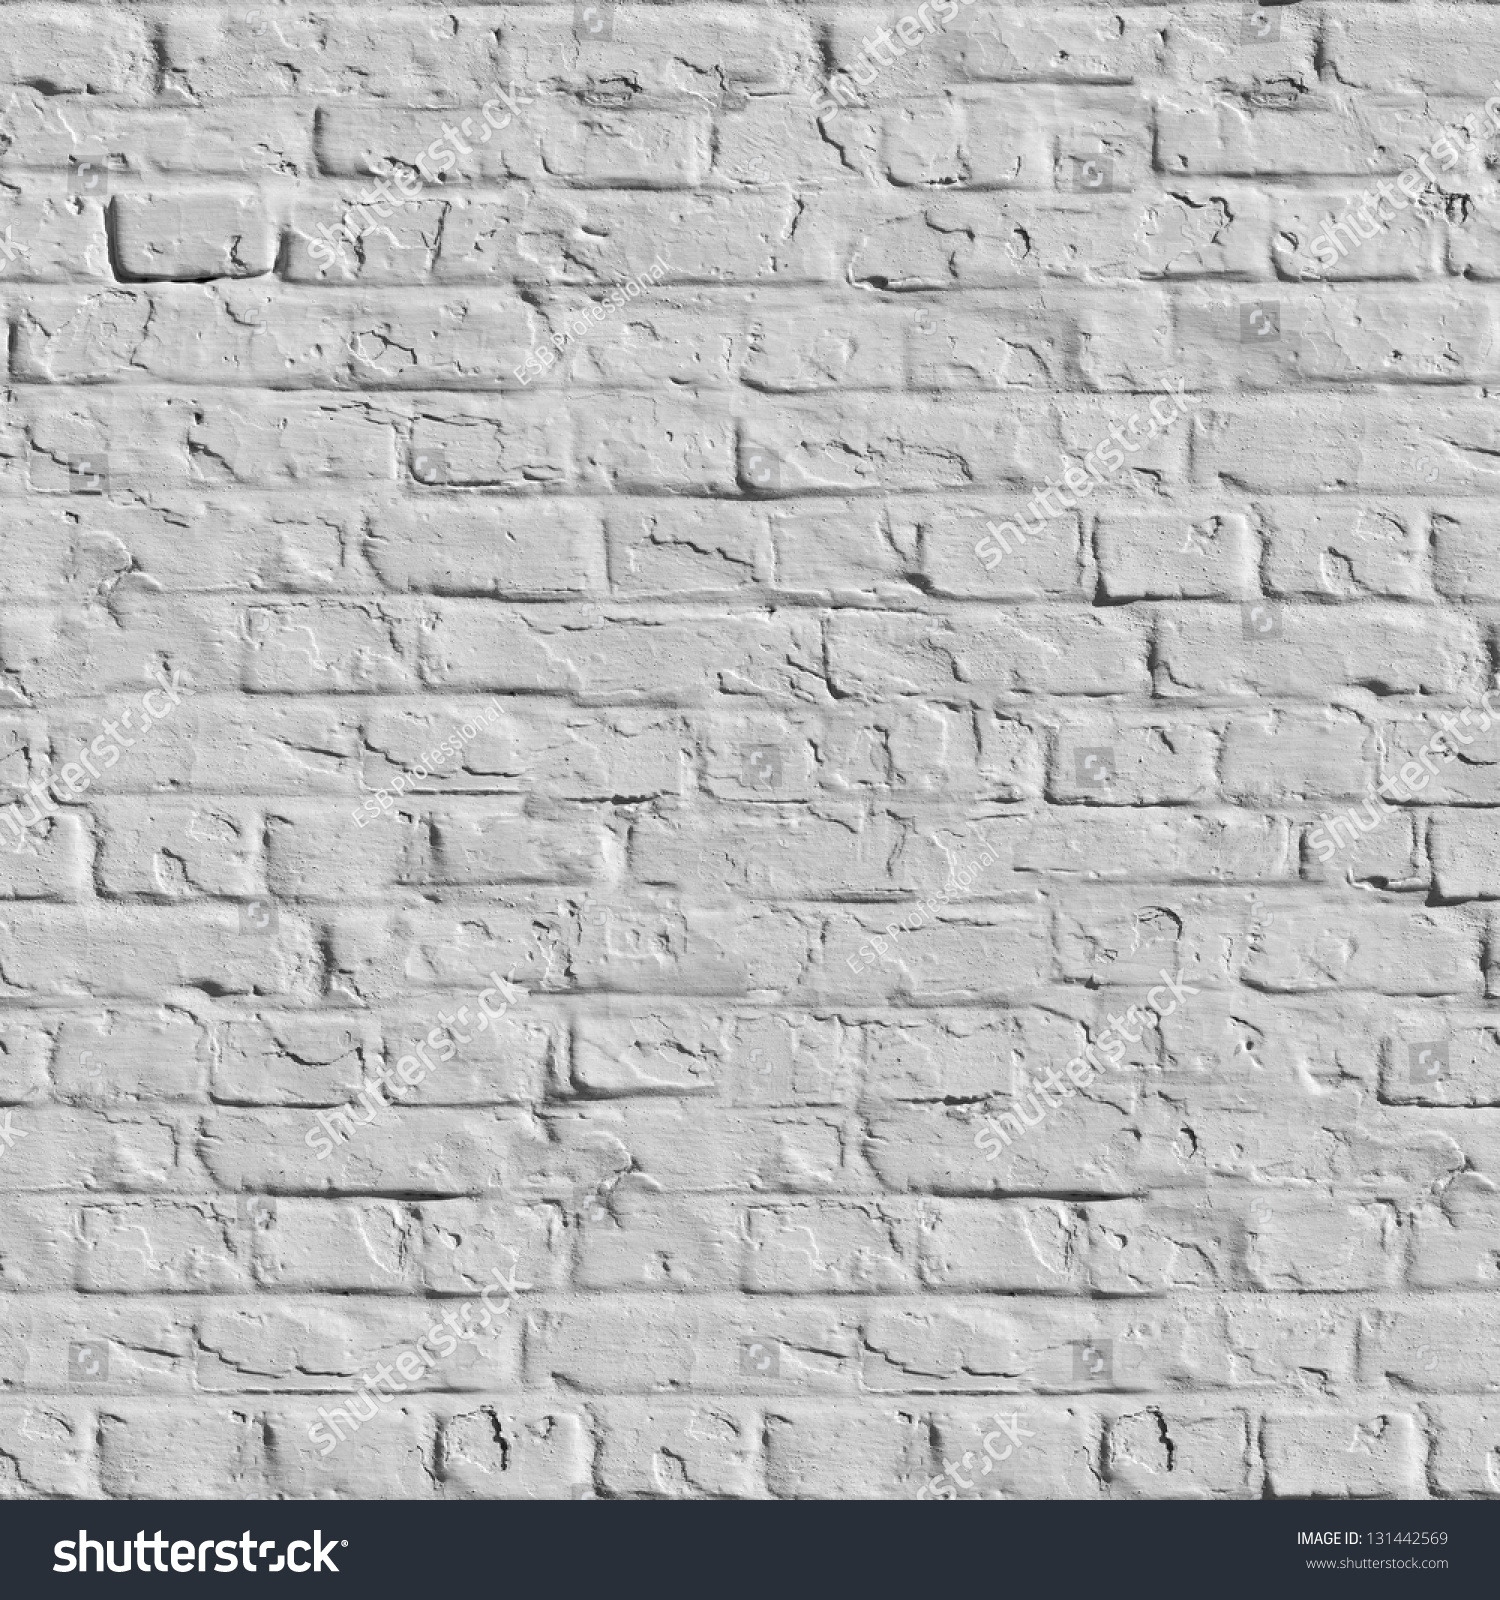 old white brick wall seamless tileable texture stock photo 131442569 shutterstock. Black Bedroom Furniture Sets. Home Design Ideas